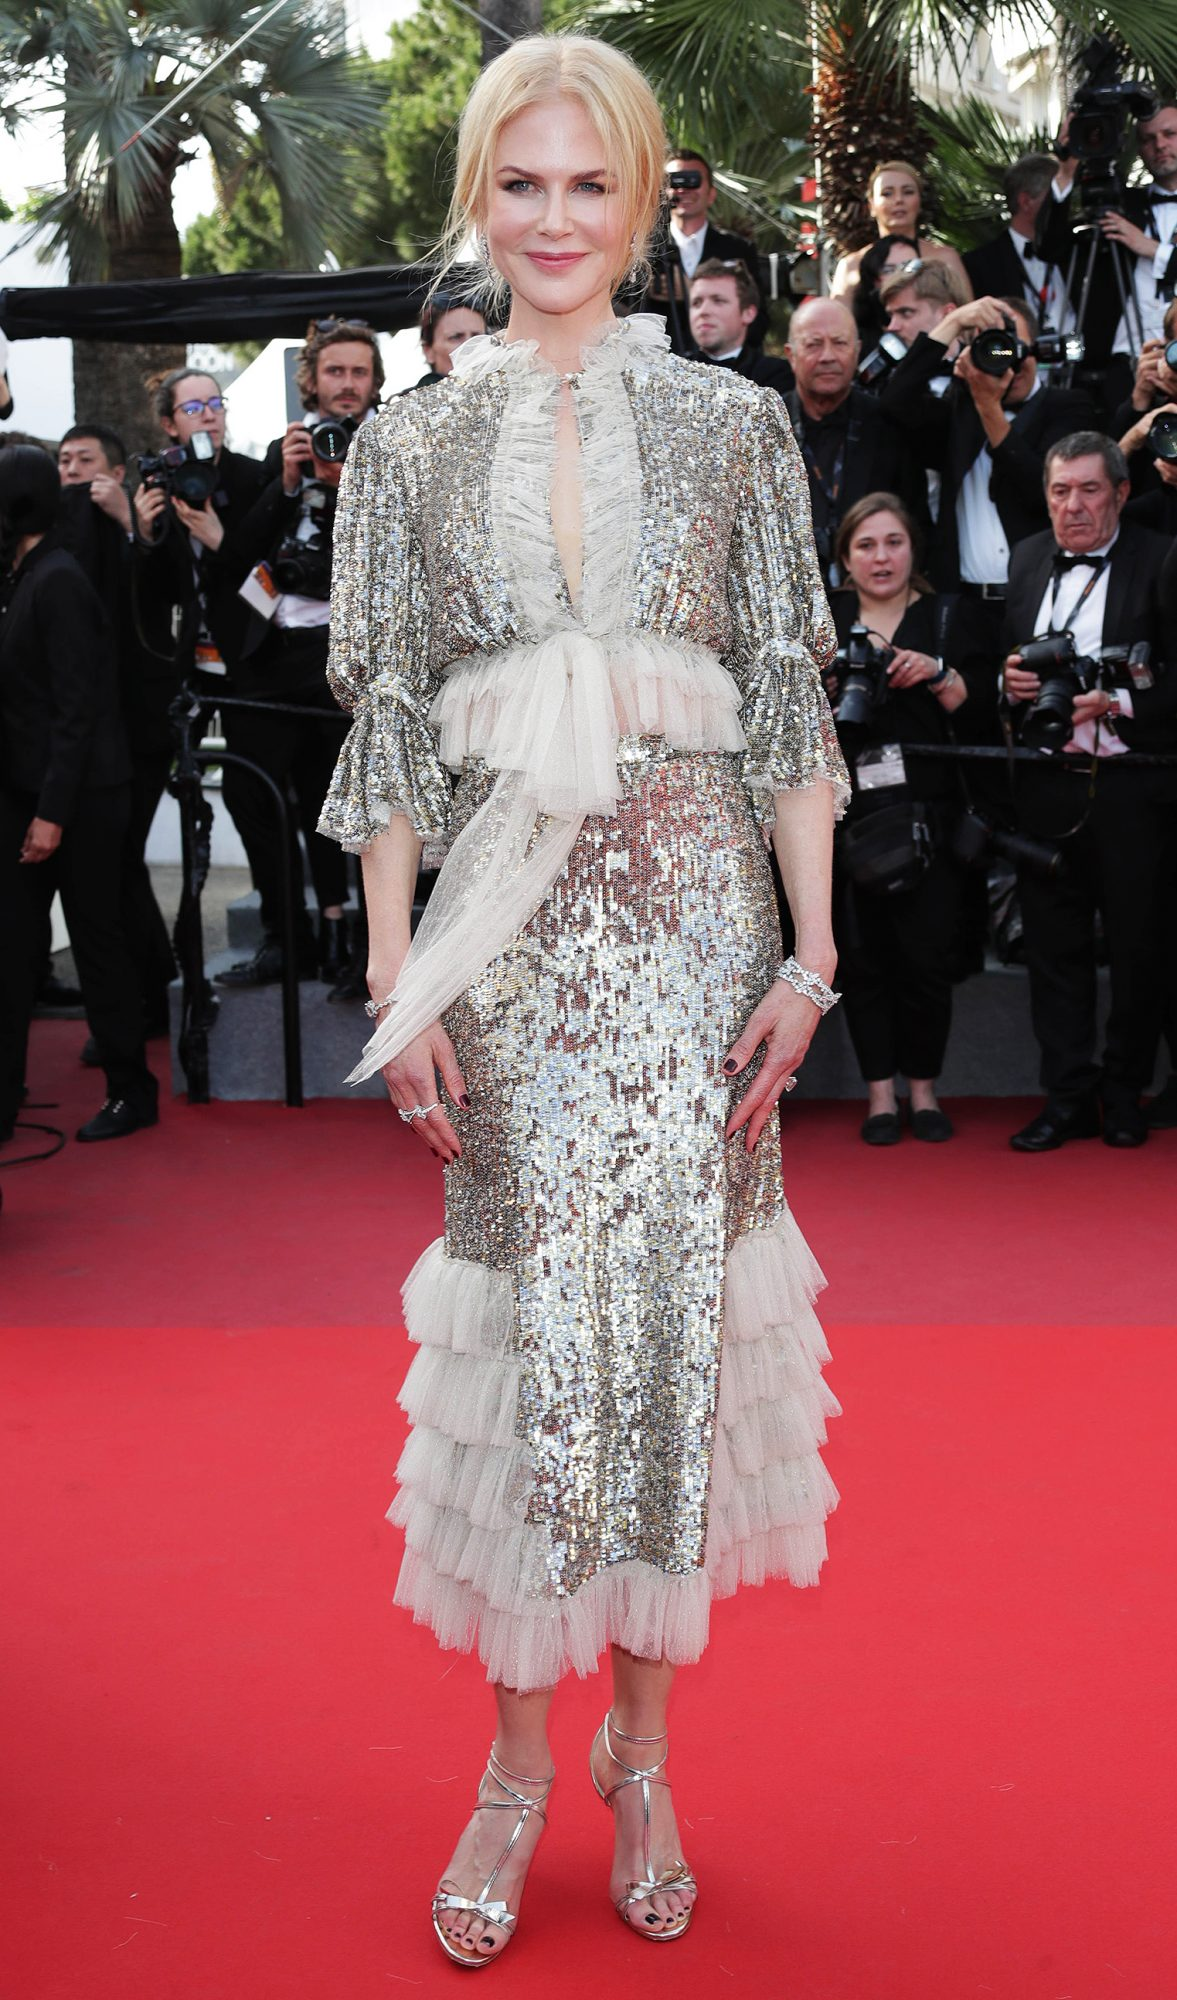 How to Talk to Girls at Parties, 70th Cannes Film Festival, France - 21 May 2017